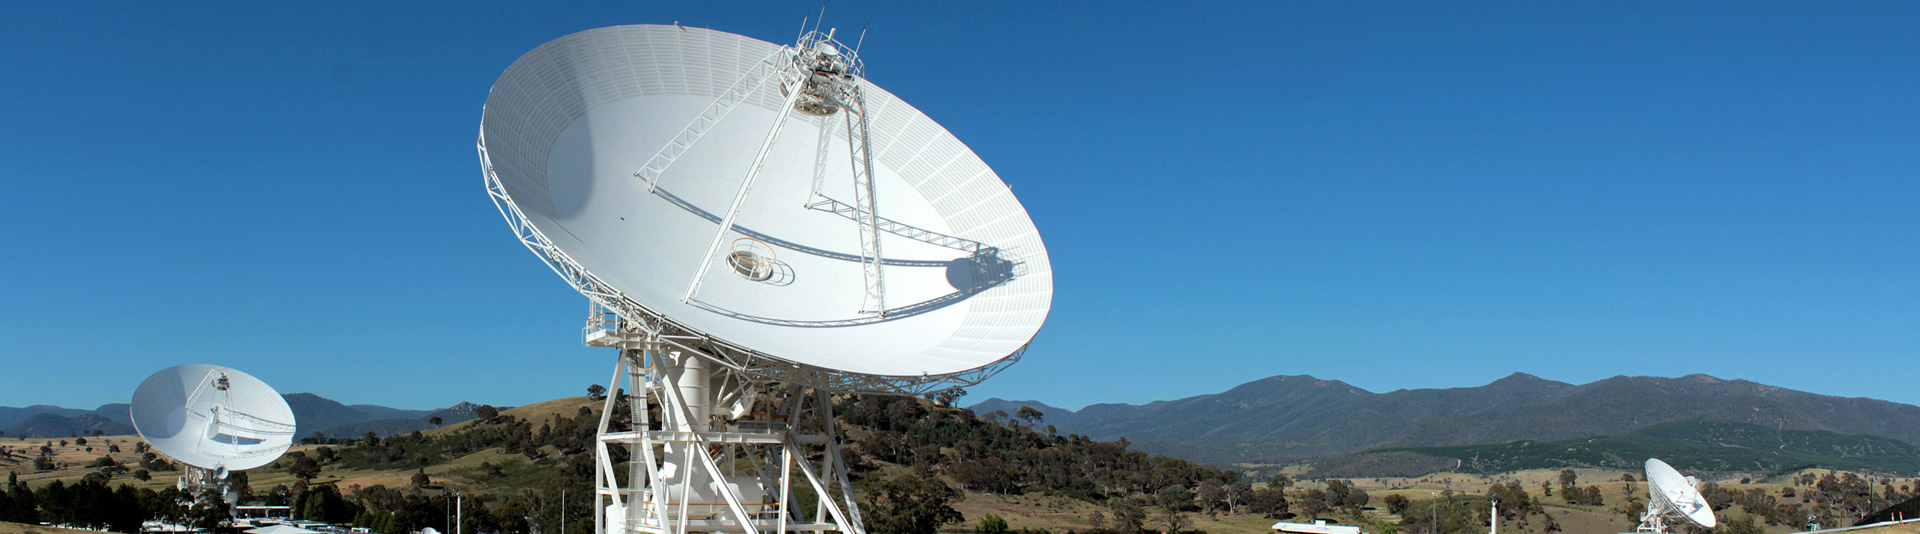 Teleport-Earth-Station-Sugession-2-